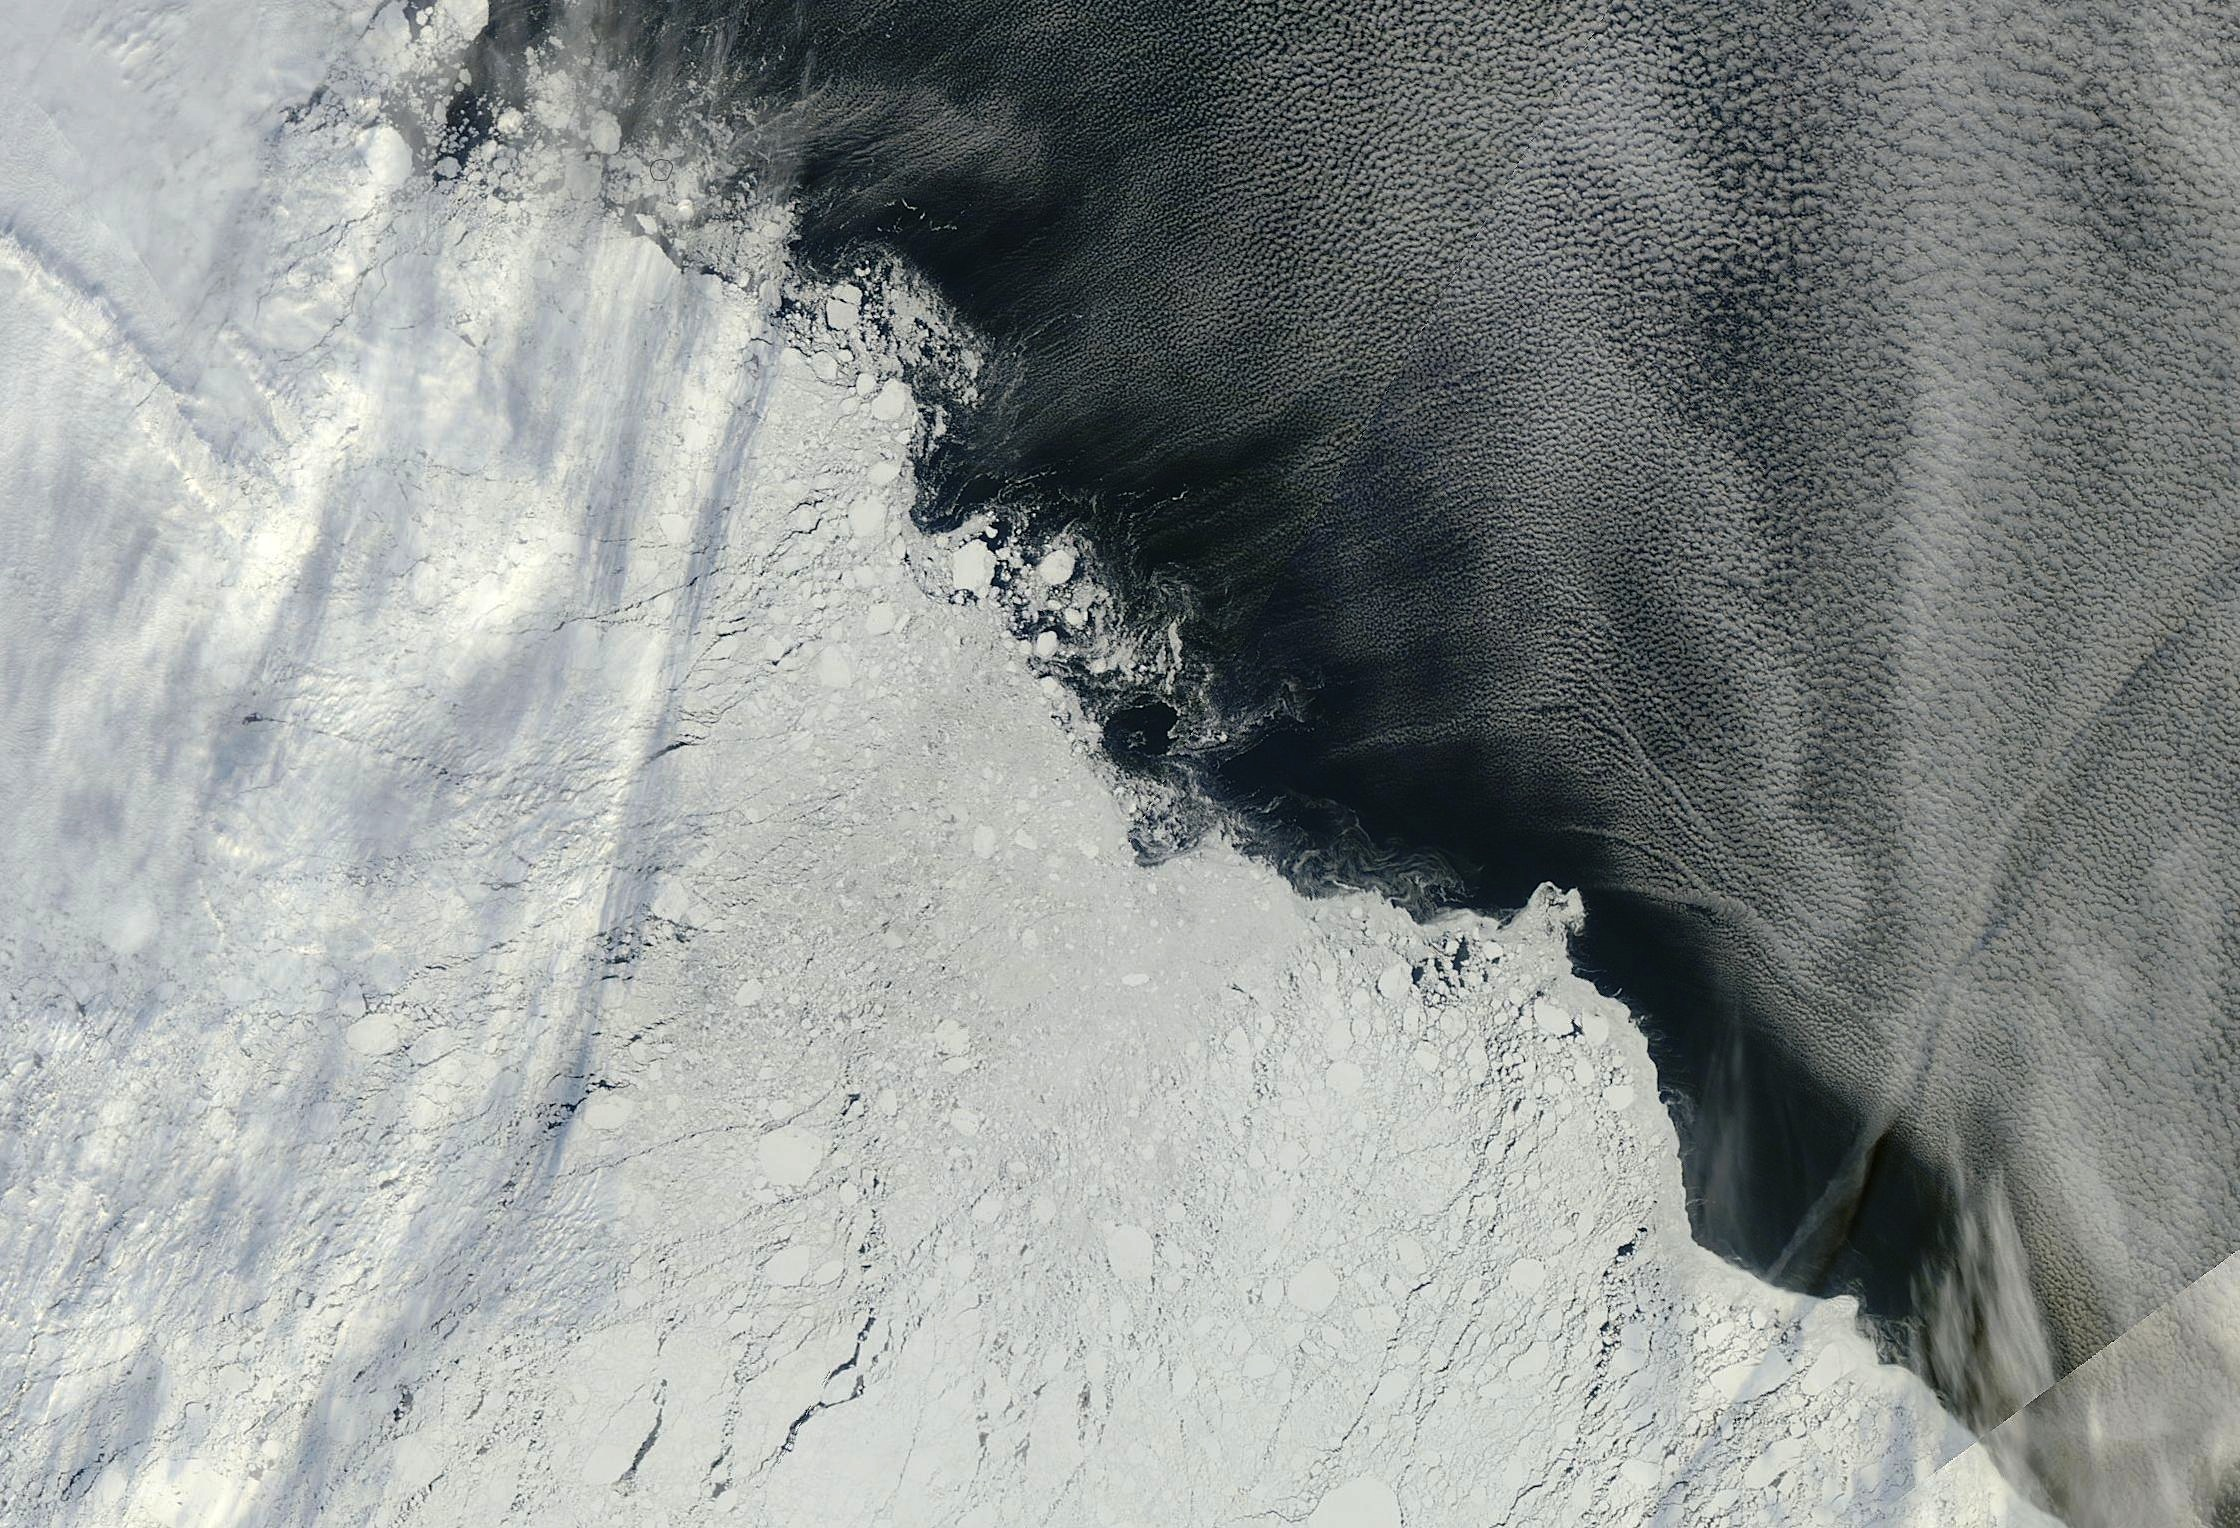 An area of the Arctic sea ice pack roughly northeast of the New Siberian Islands, captured by multiple orbits of the MODIS instrument on NASA's Terra satellite on Sept. 13, 2013. Sea ice dominates the lower left half of the image; open ocean and cloud formations can be seen in the upper right. Image Credit: Image courtesy NASA Worldview